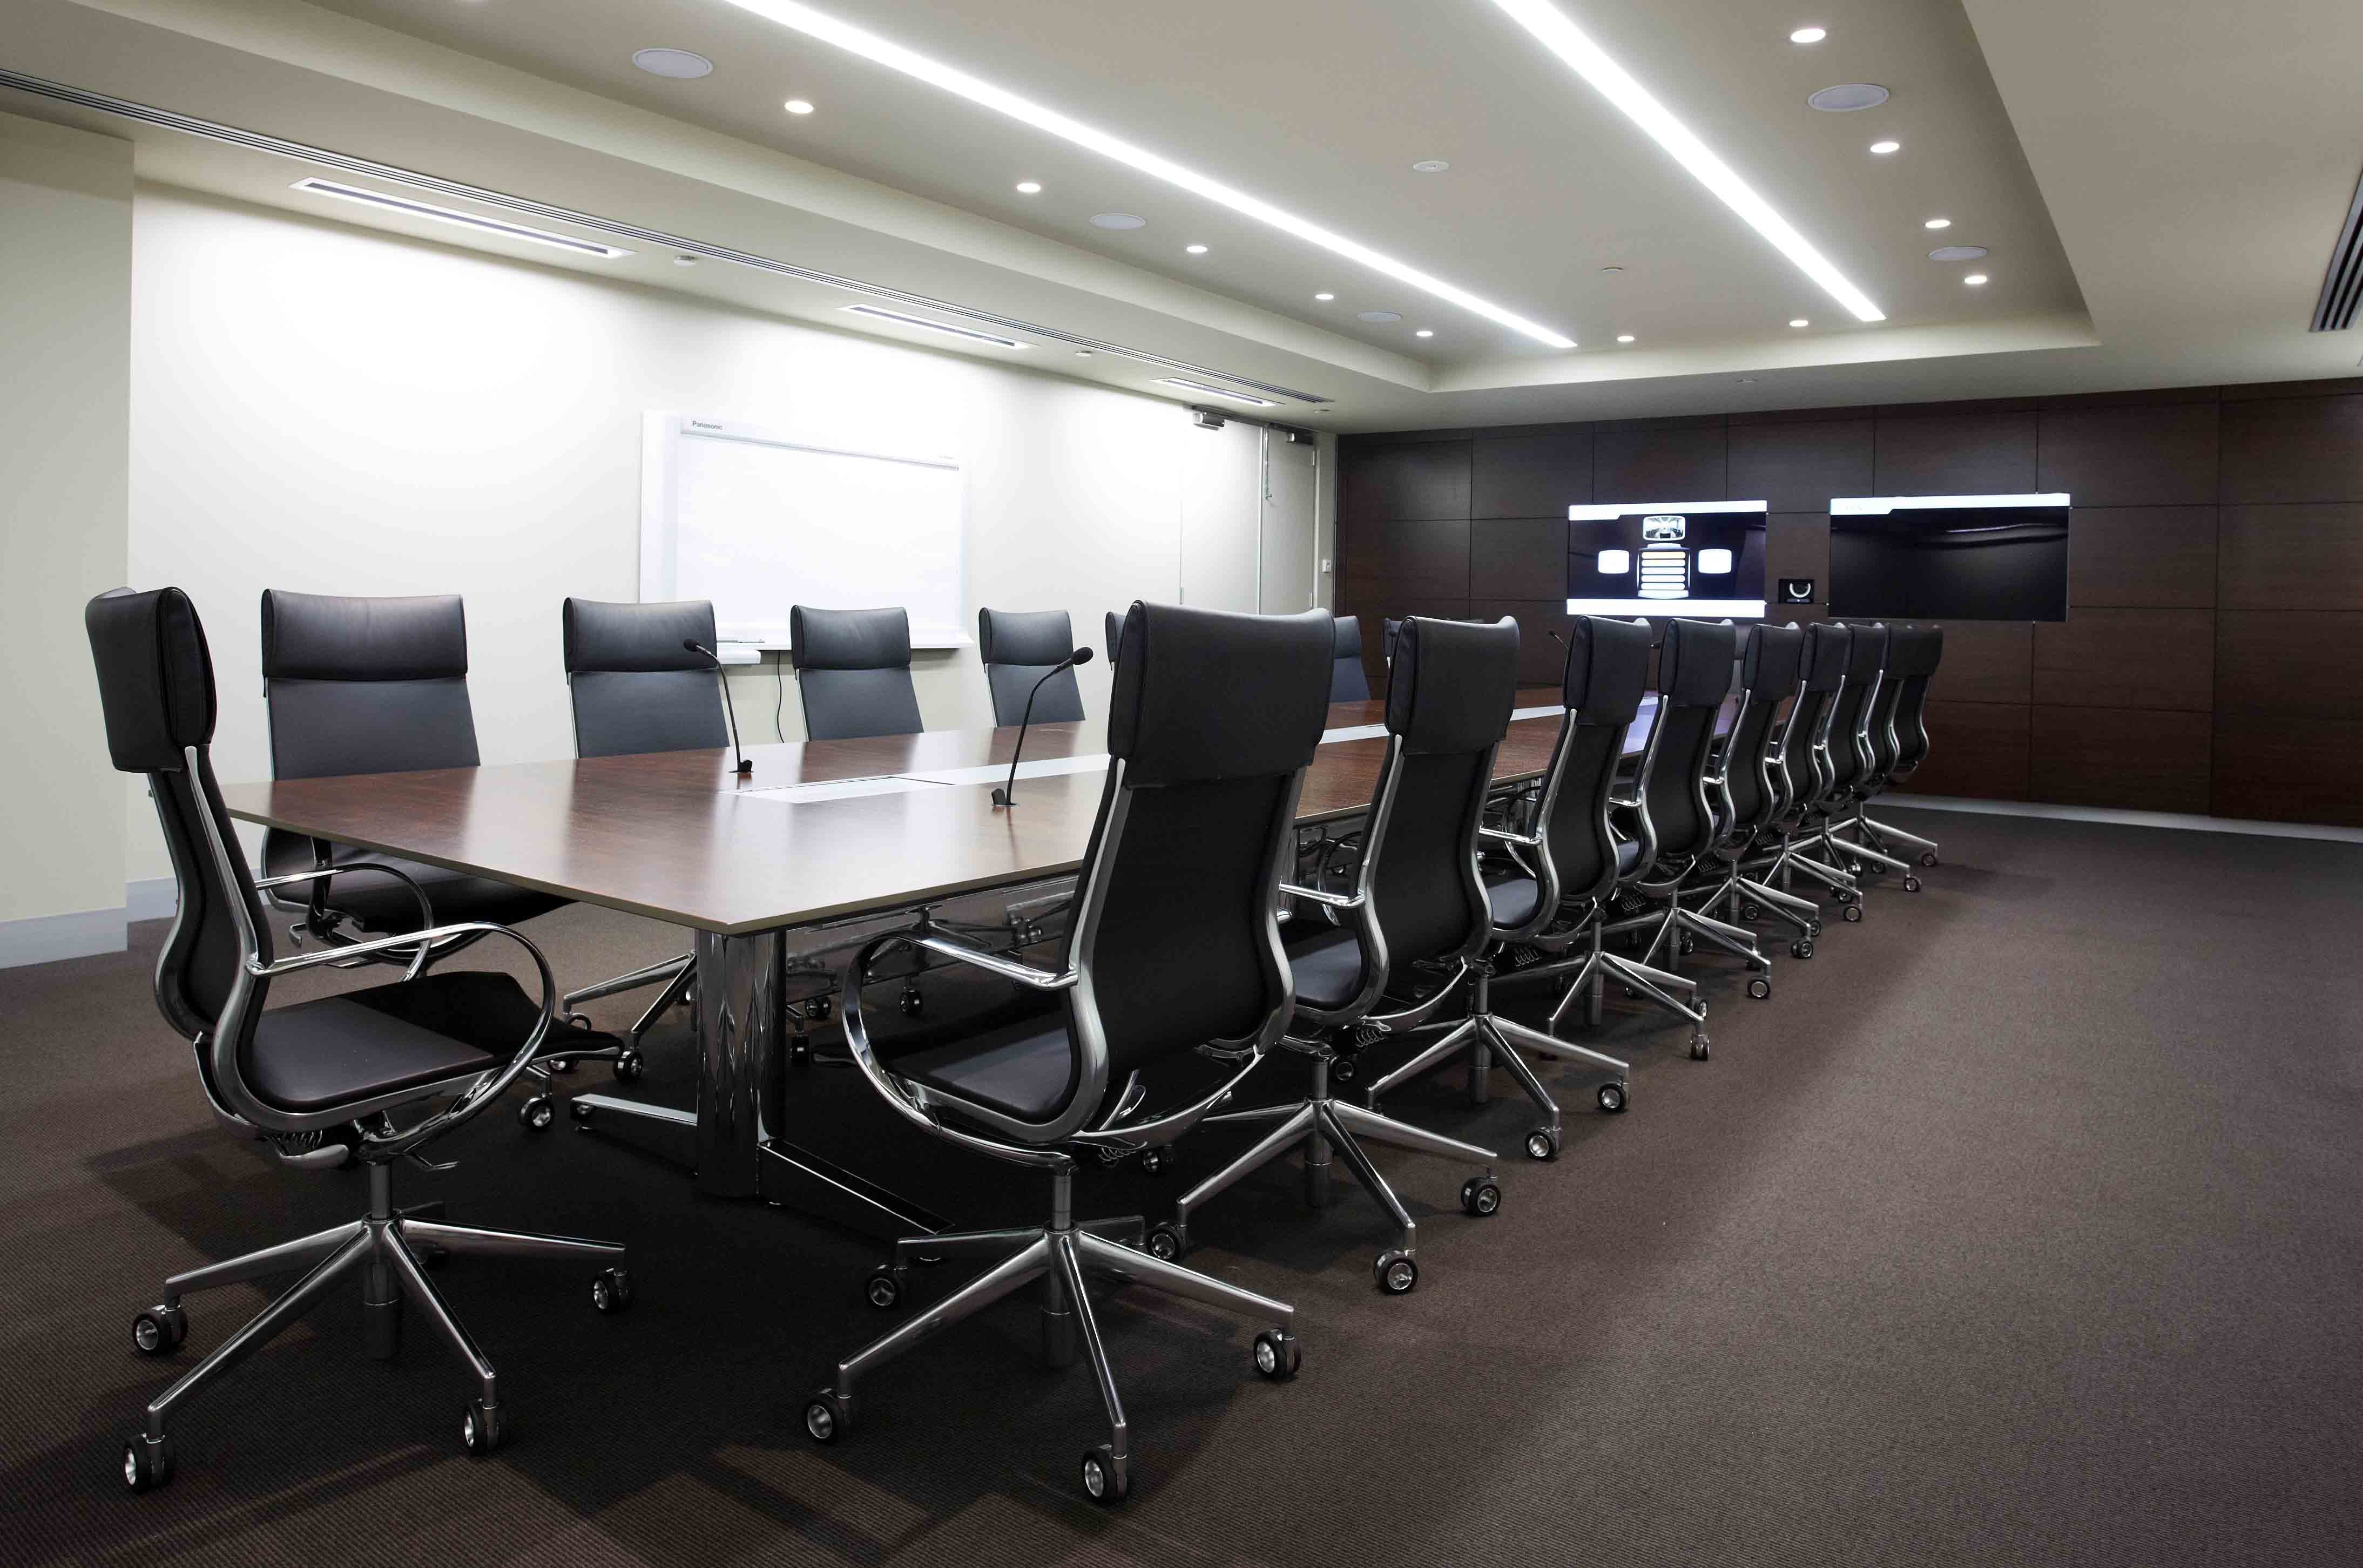 Board room, meeting room at Scottish House Business Centre, image 1